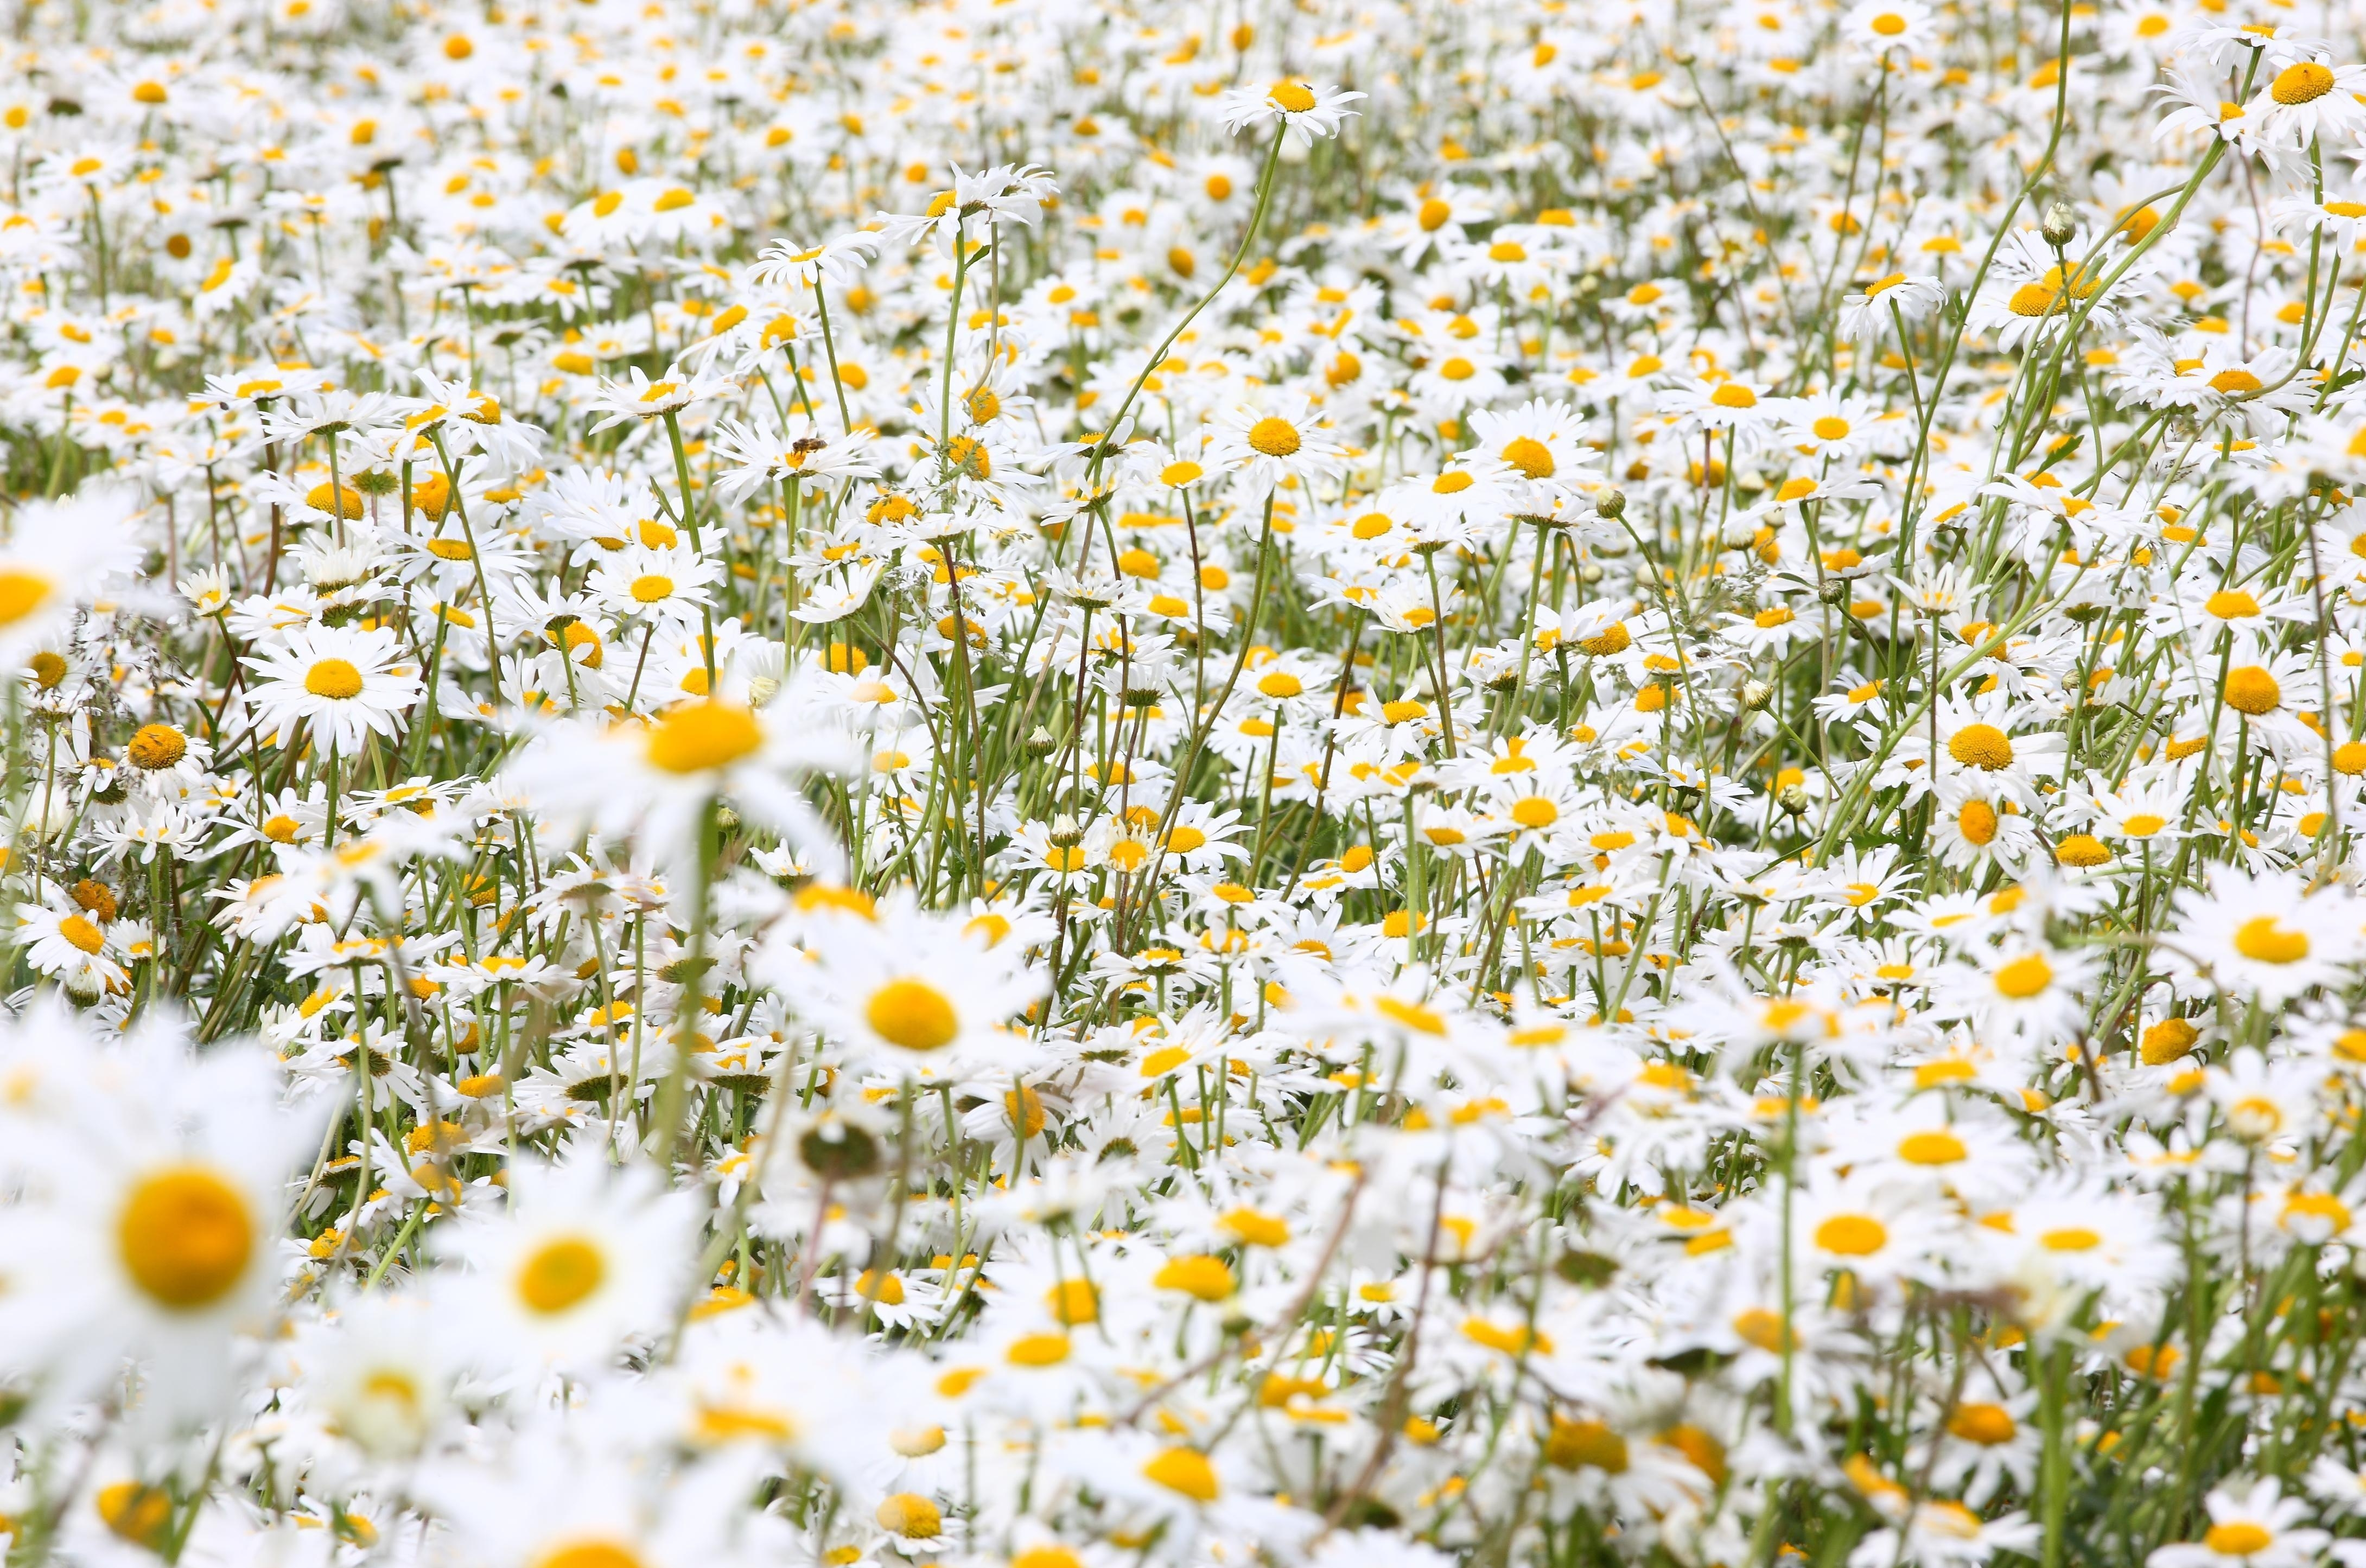 Field of daisies wallpaper sf wallpaper lavender wallpaper widescreen pattern color tumblr for iphone src izmirmasajfo Images